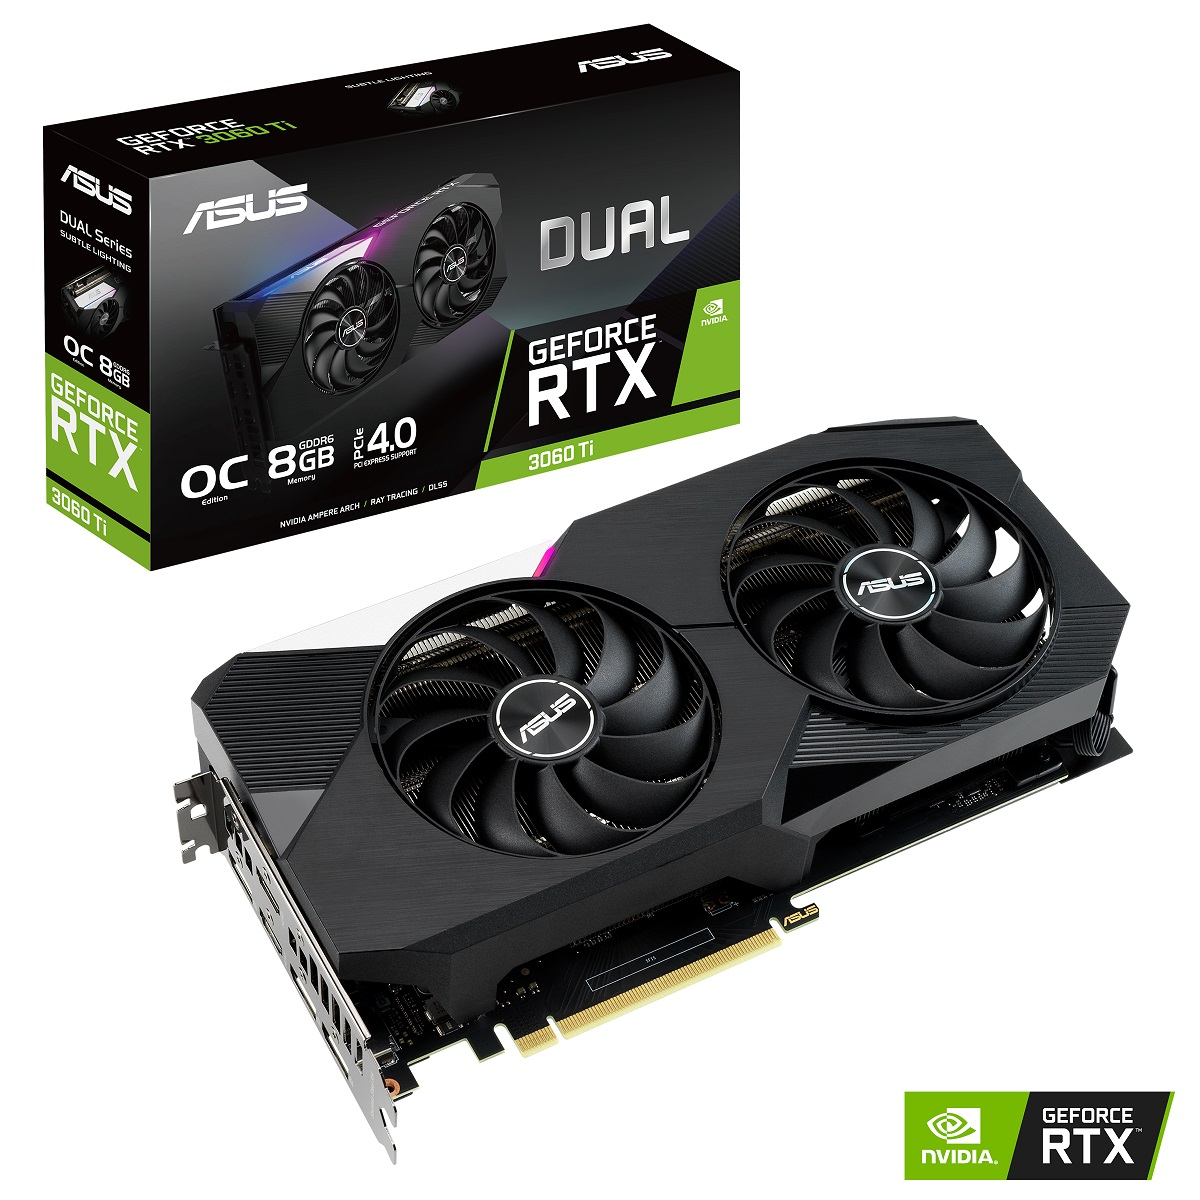 ASUS nVidia Geforce DUAL RTX 3060 8G GDDR6 OC Edition, 1740 MHz 2nd Gen RT Cores 3rd Gen Tensor Cores